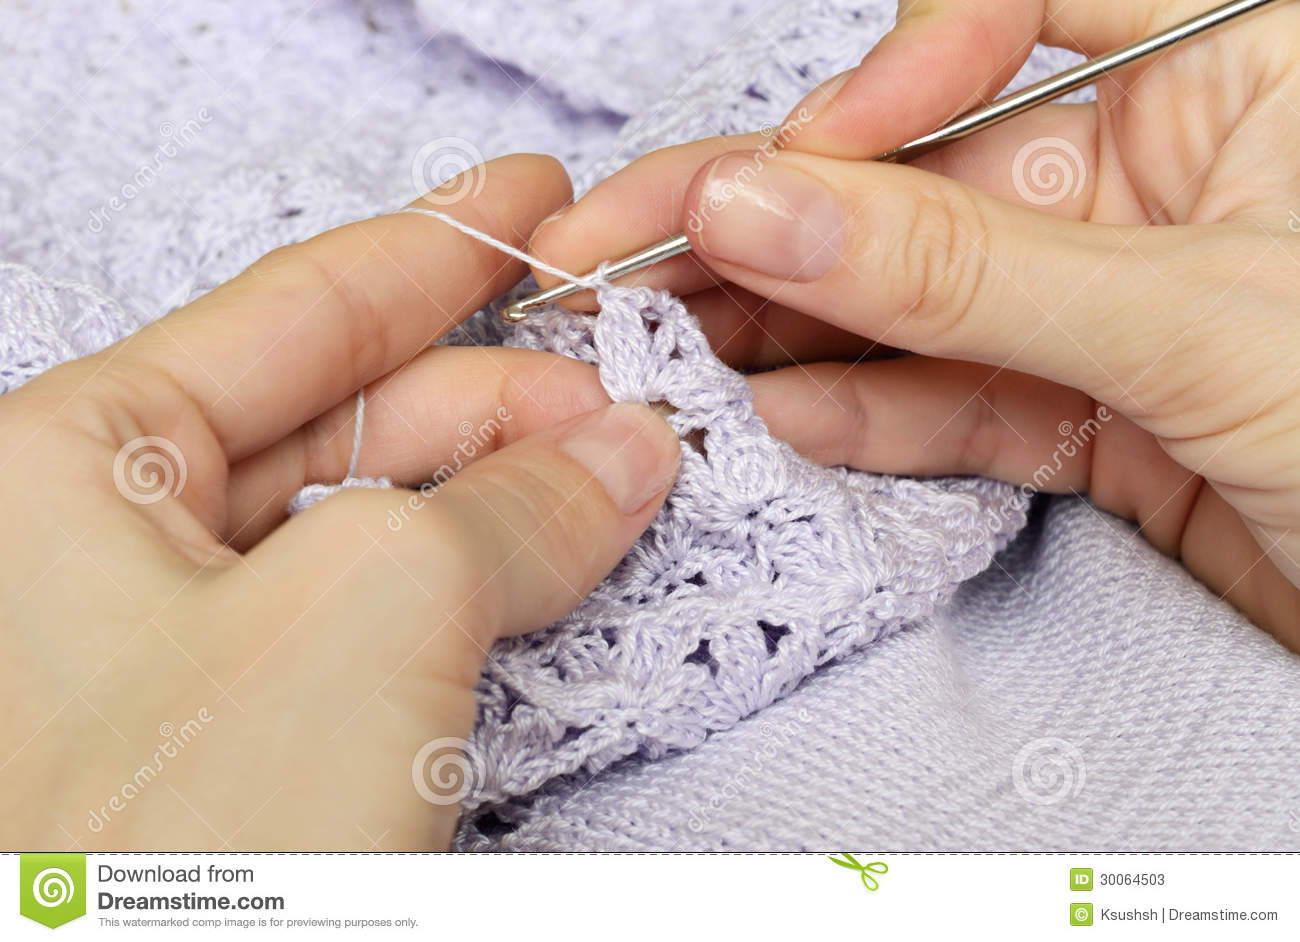 Crocheting With Hands : Hands Crocheting Women s hands and crocheting